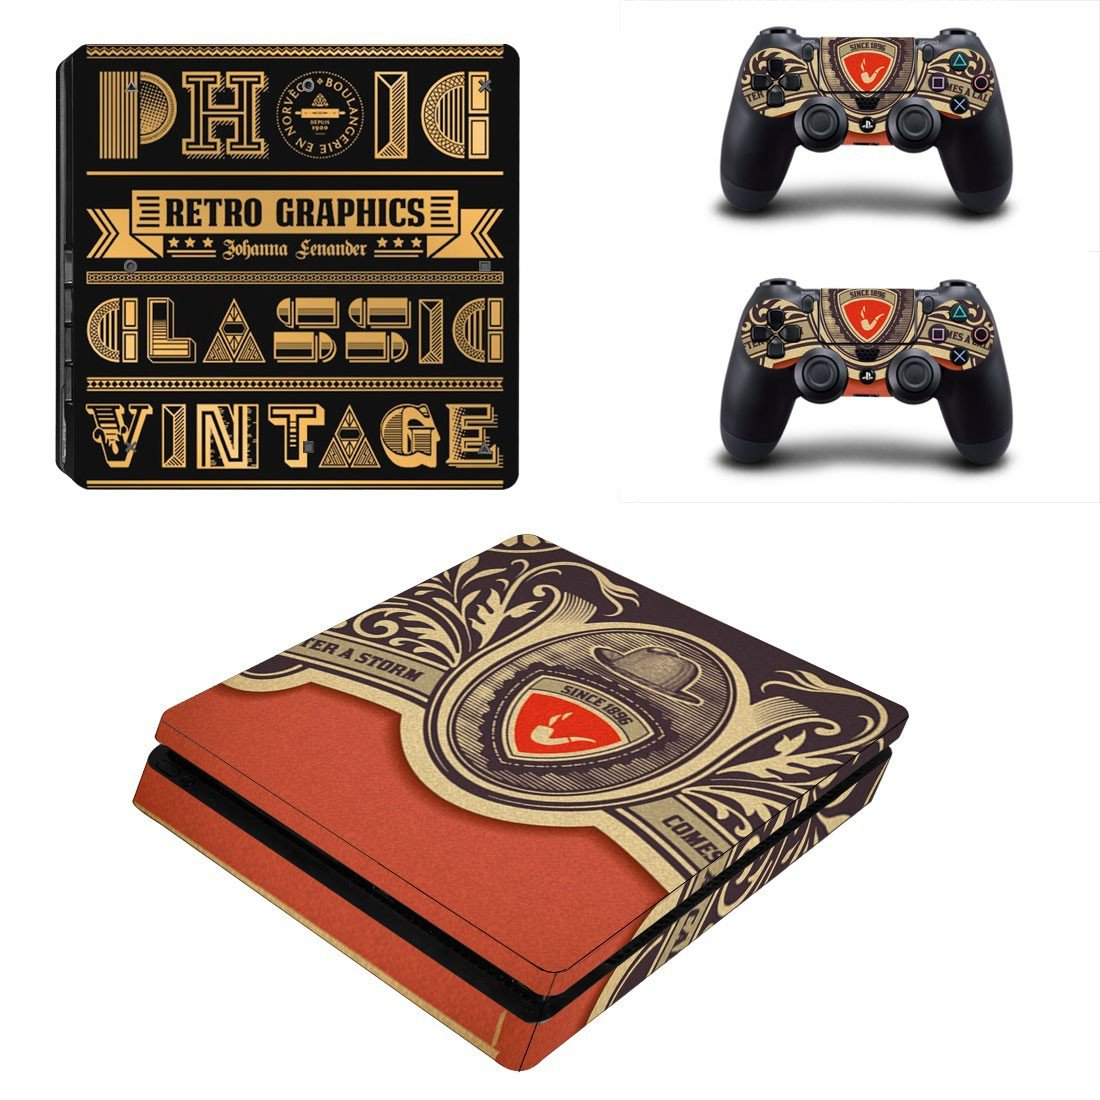 Retro Graphics decal skin sticker for PS4 Slim console and controllers